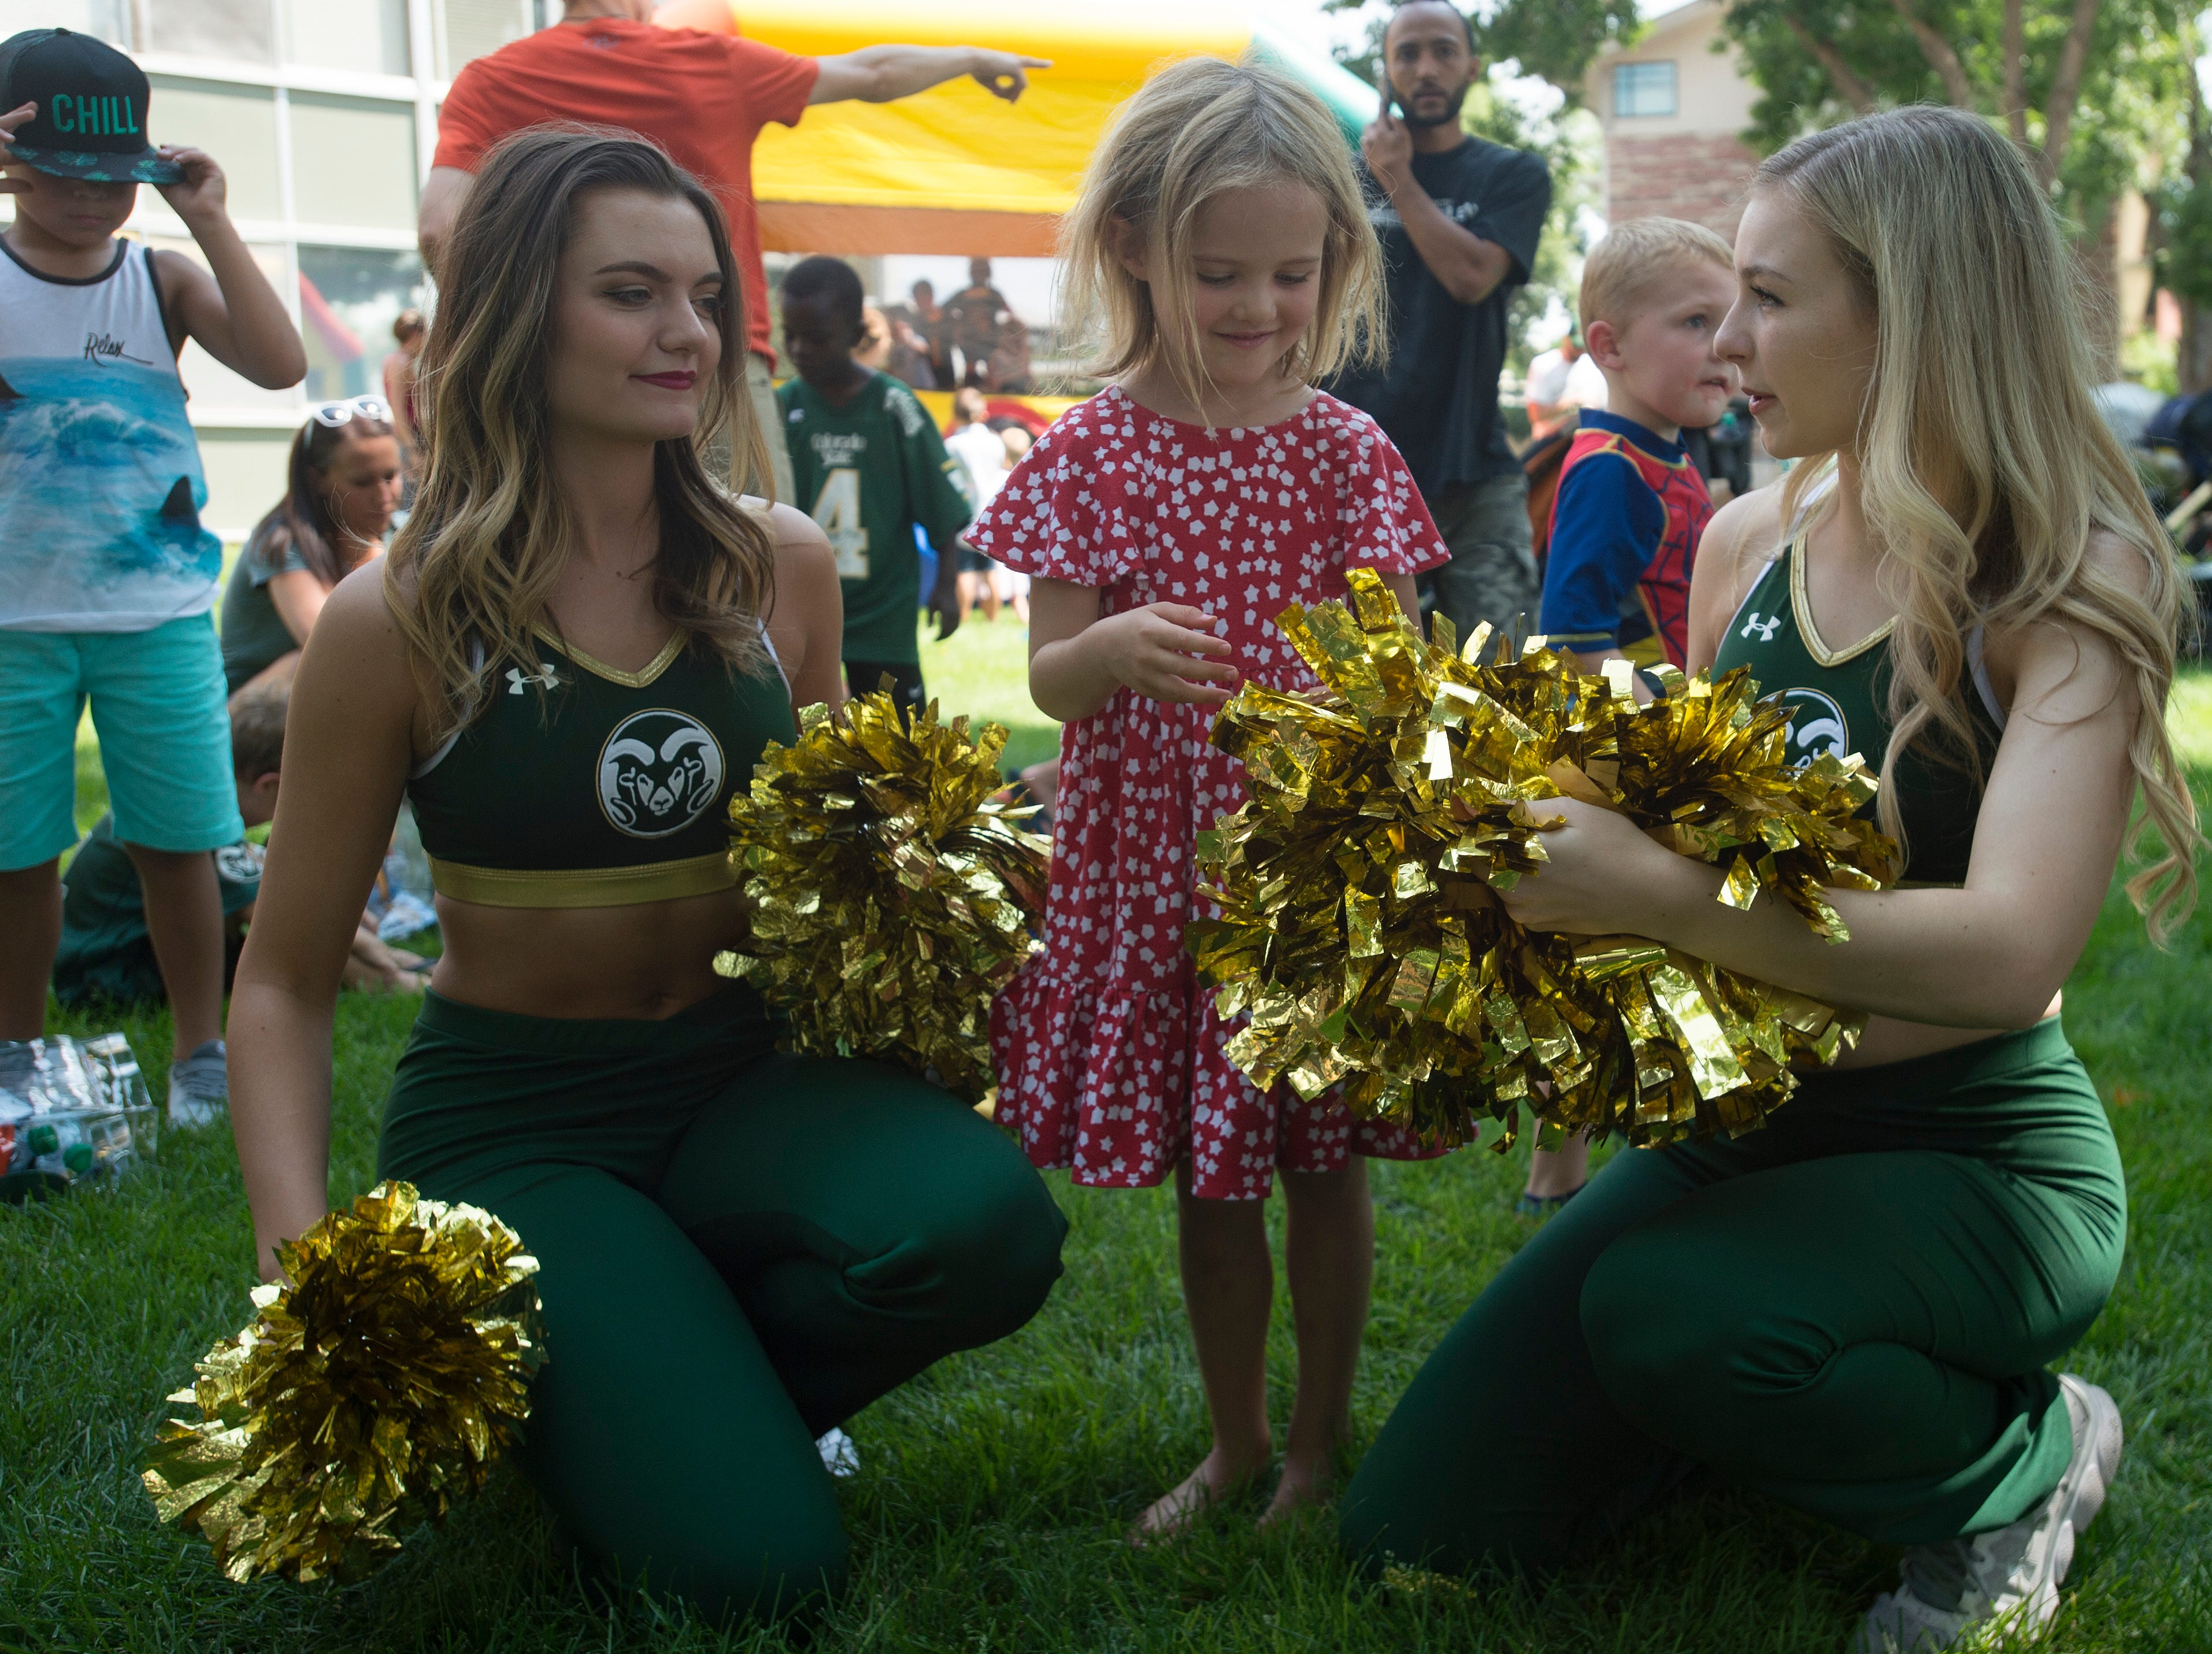 Lila Quinn, 5, meets CSU cheerleaders during an open house and scrimmage hosted by the Rams outside of Canvas Stadium on Saturday, August 4, 2018.